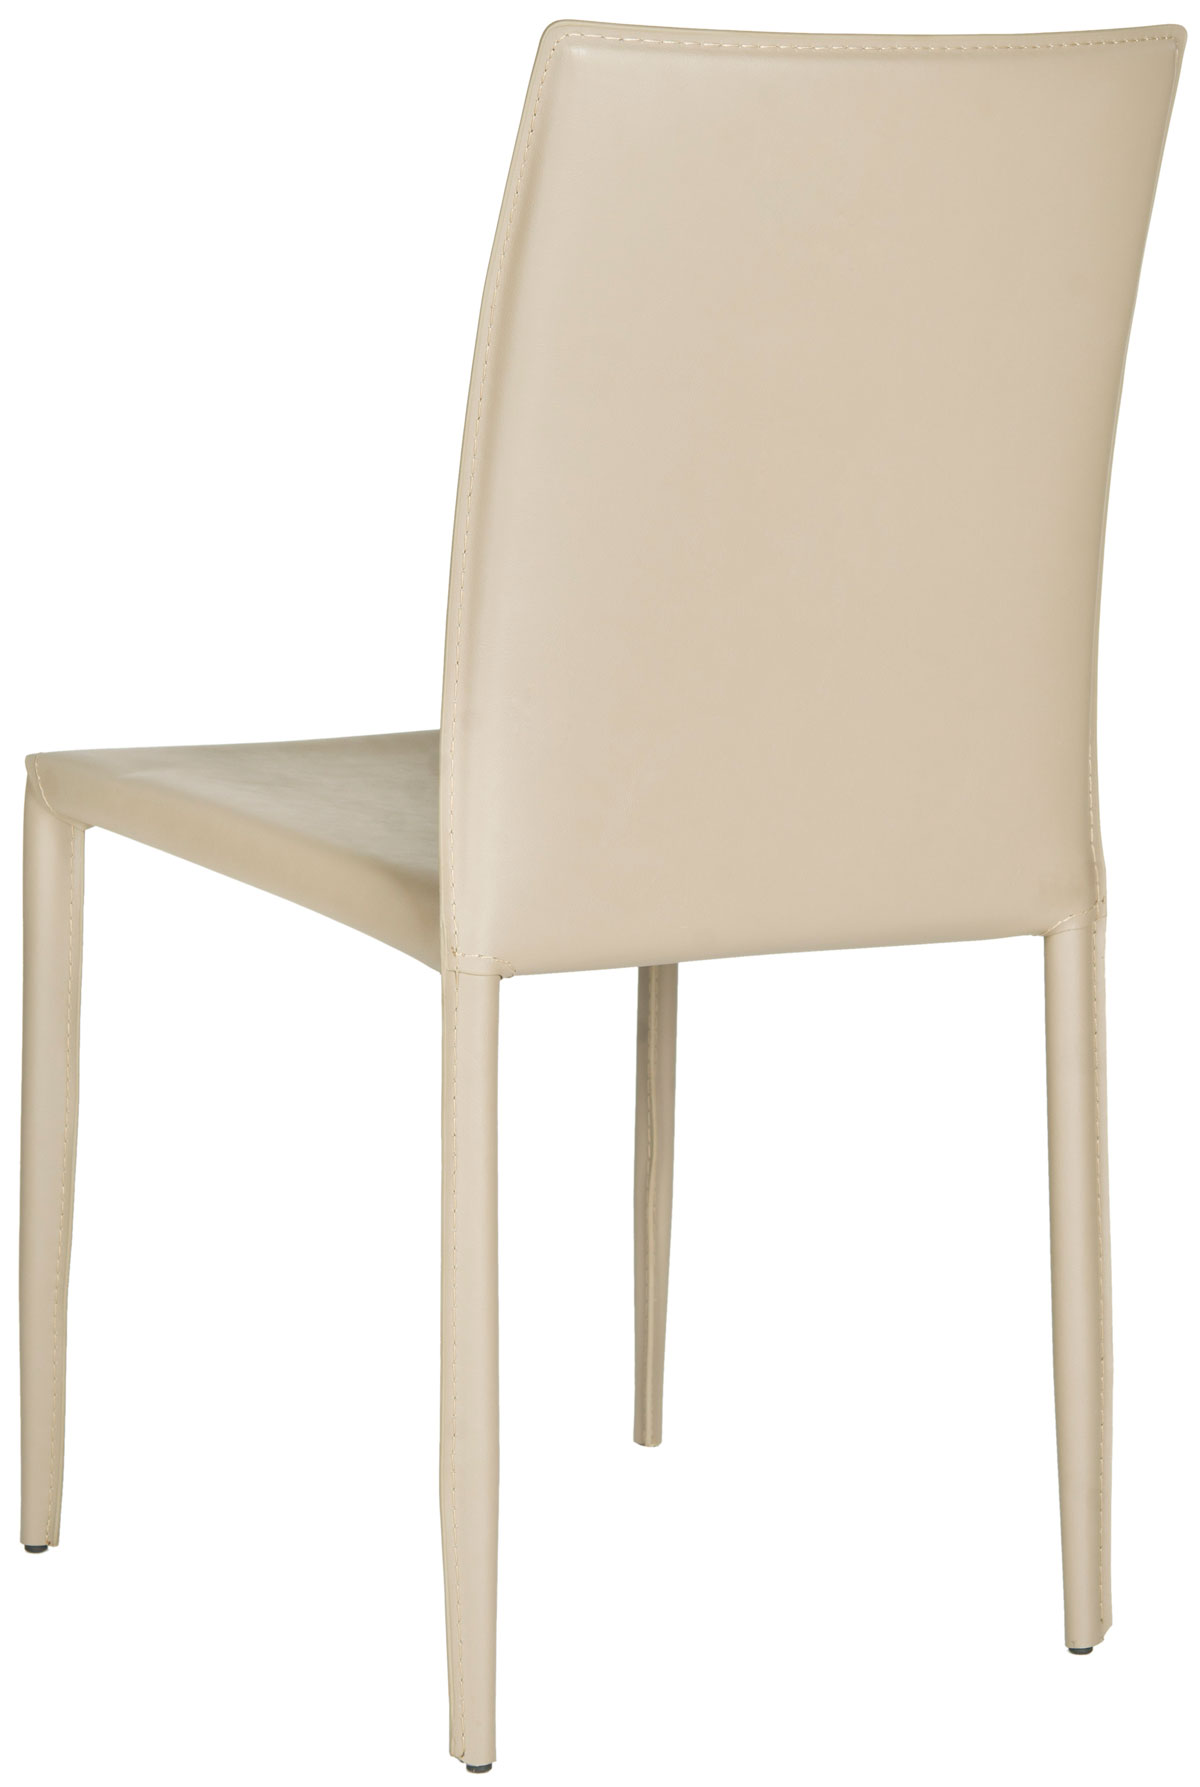 safavieh karna dining chair recliner covers target fox2009m set2 chairs furniture by